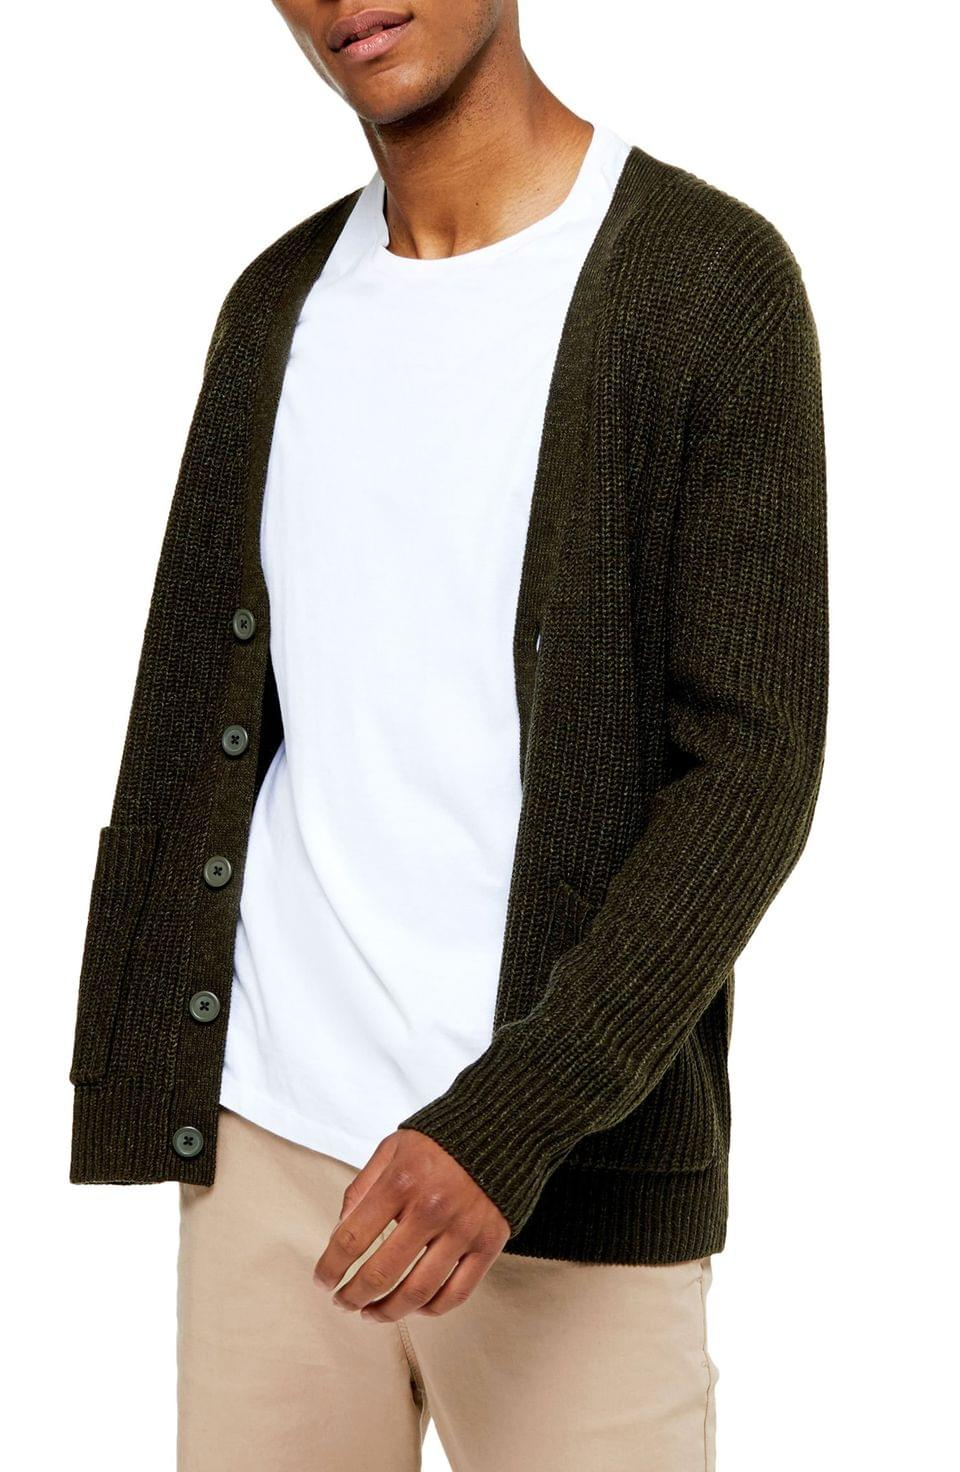 Men's Topman Rack Textured Cardigan Sweater